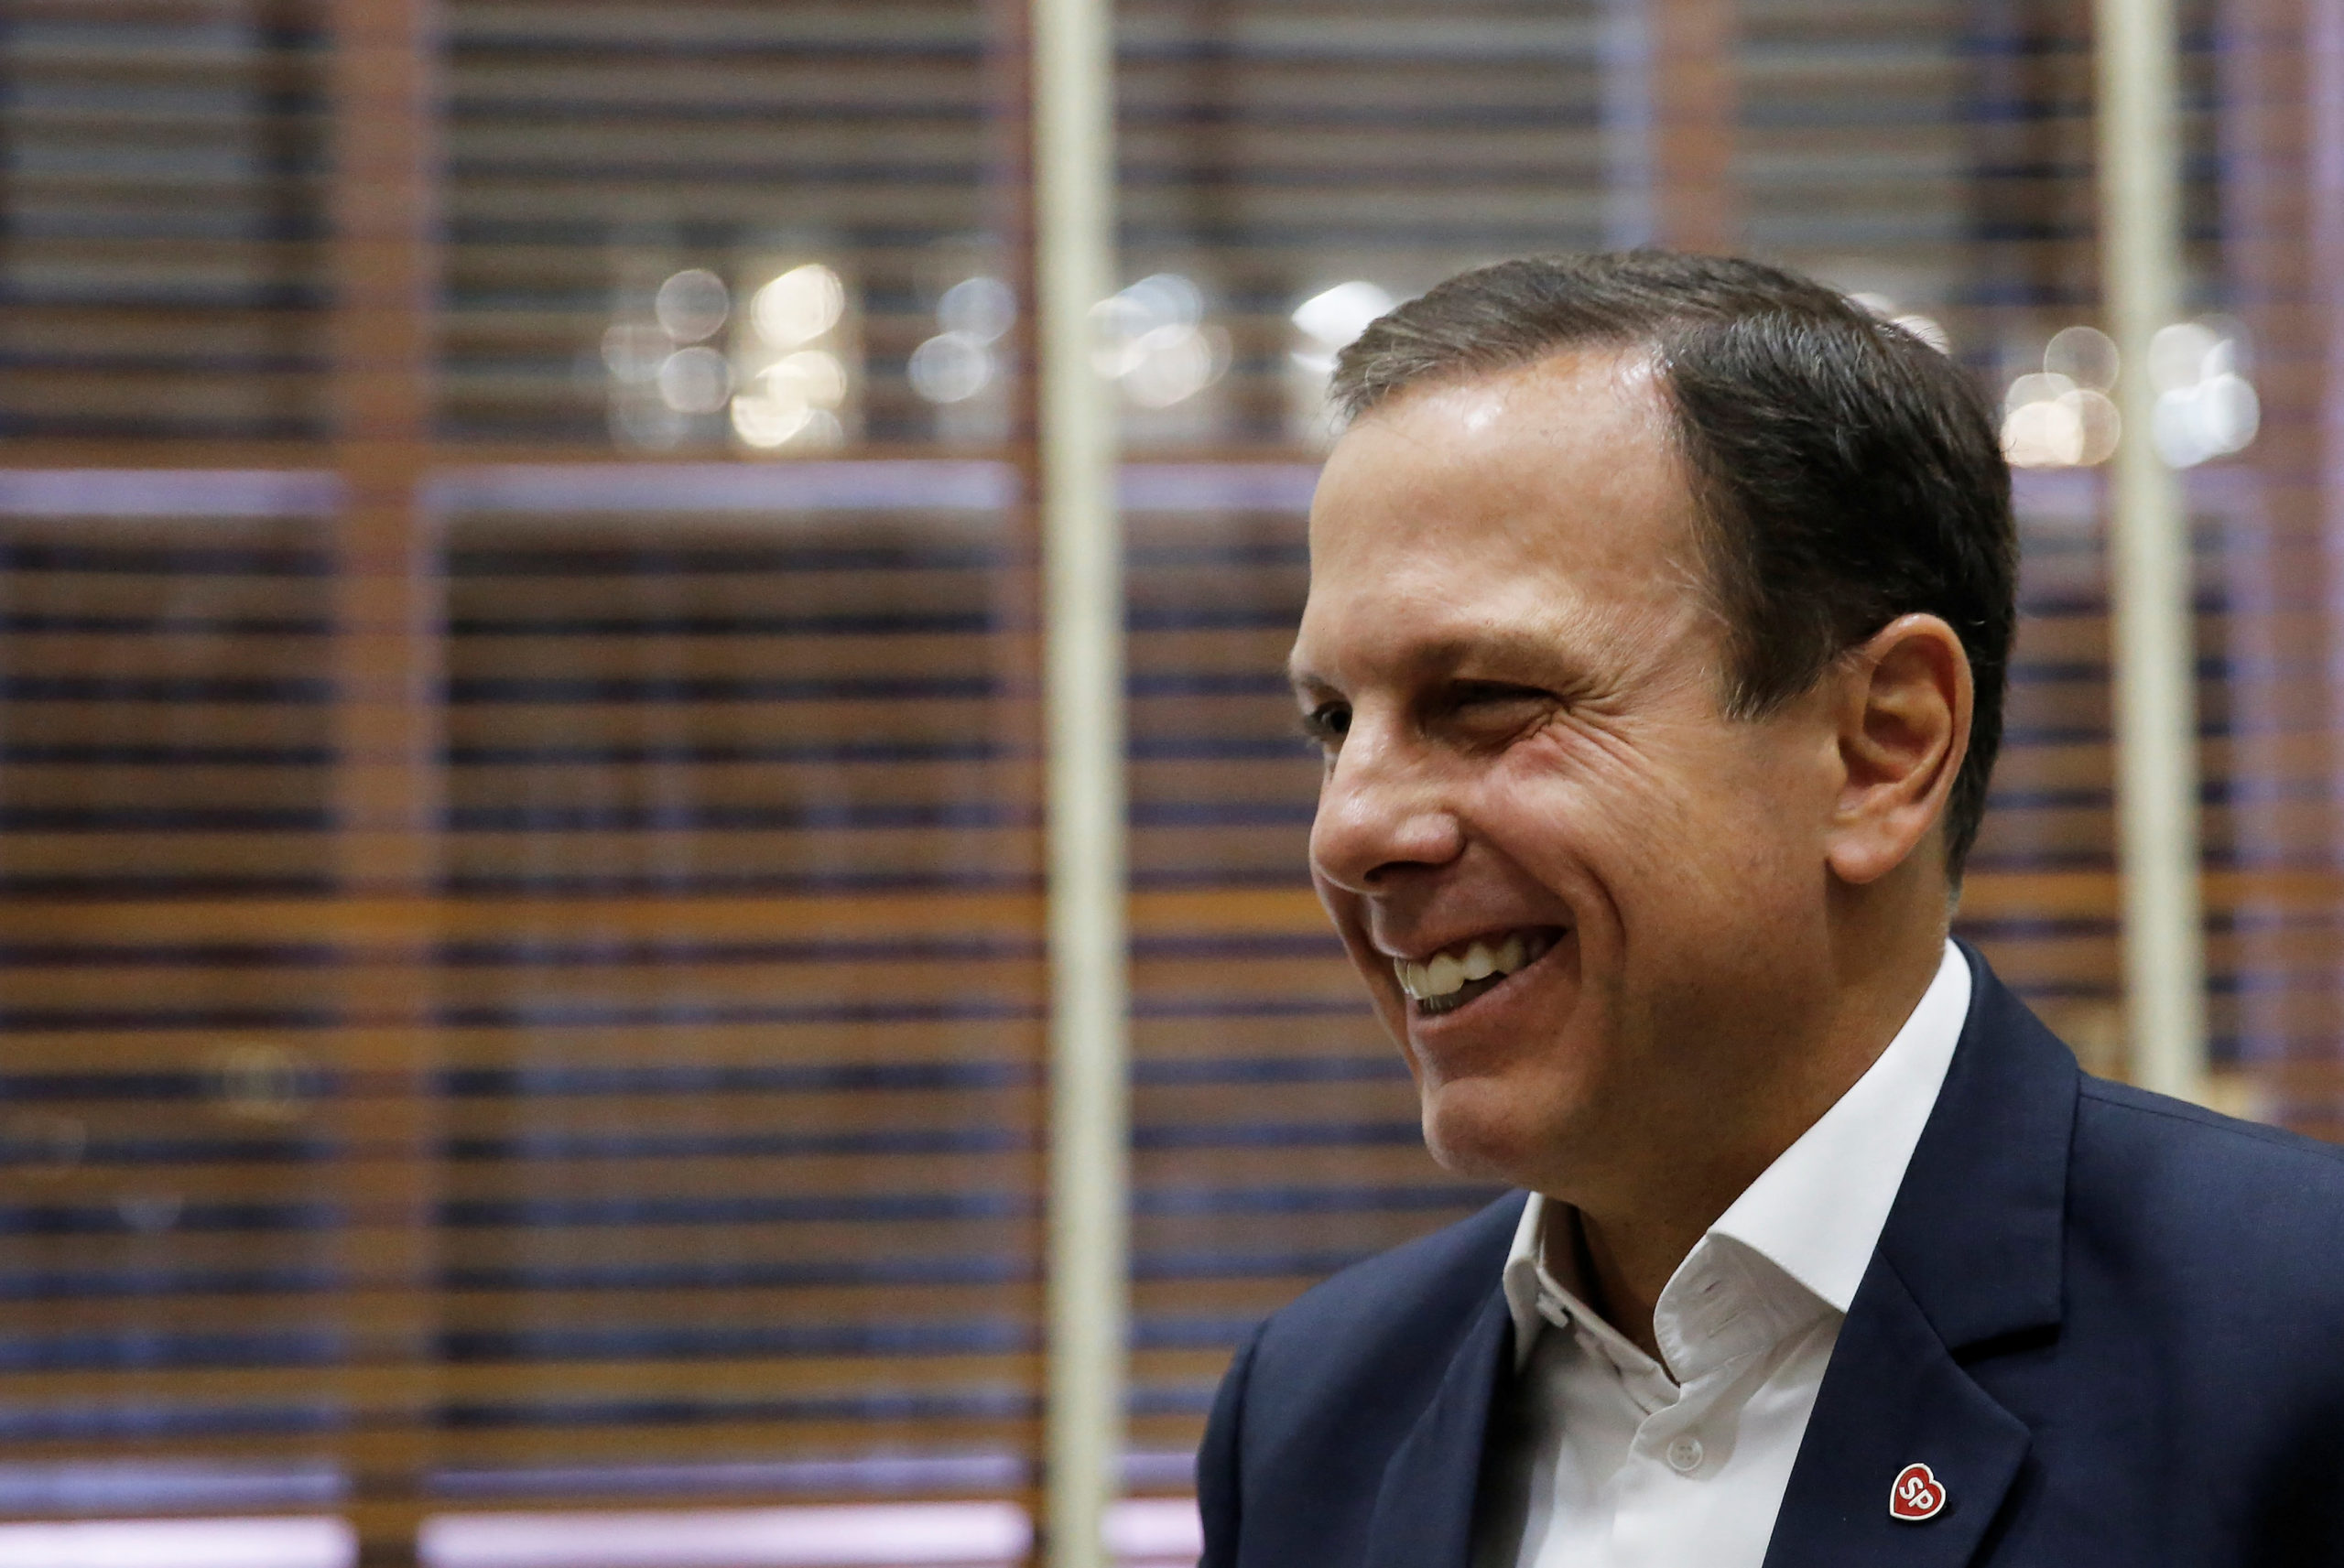 Sao Paulo's Mayor Joao Doria smiles as he talks during an interview with Reuters in Sao Paulo, Brazil, April 4, 2017. Picture taken on April 4, 2017. REUTERS/Nacho Doce